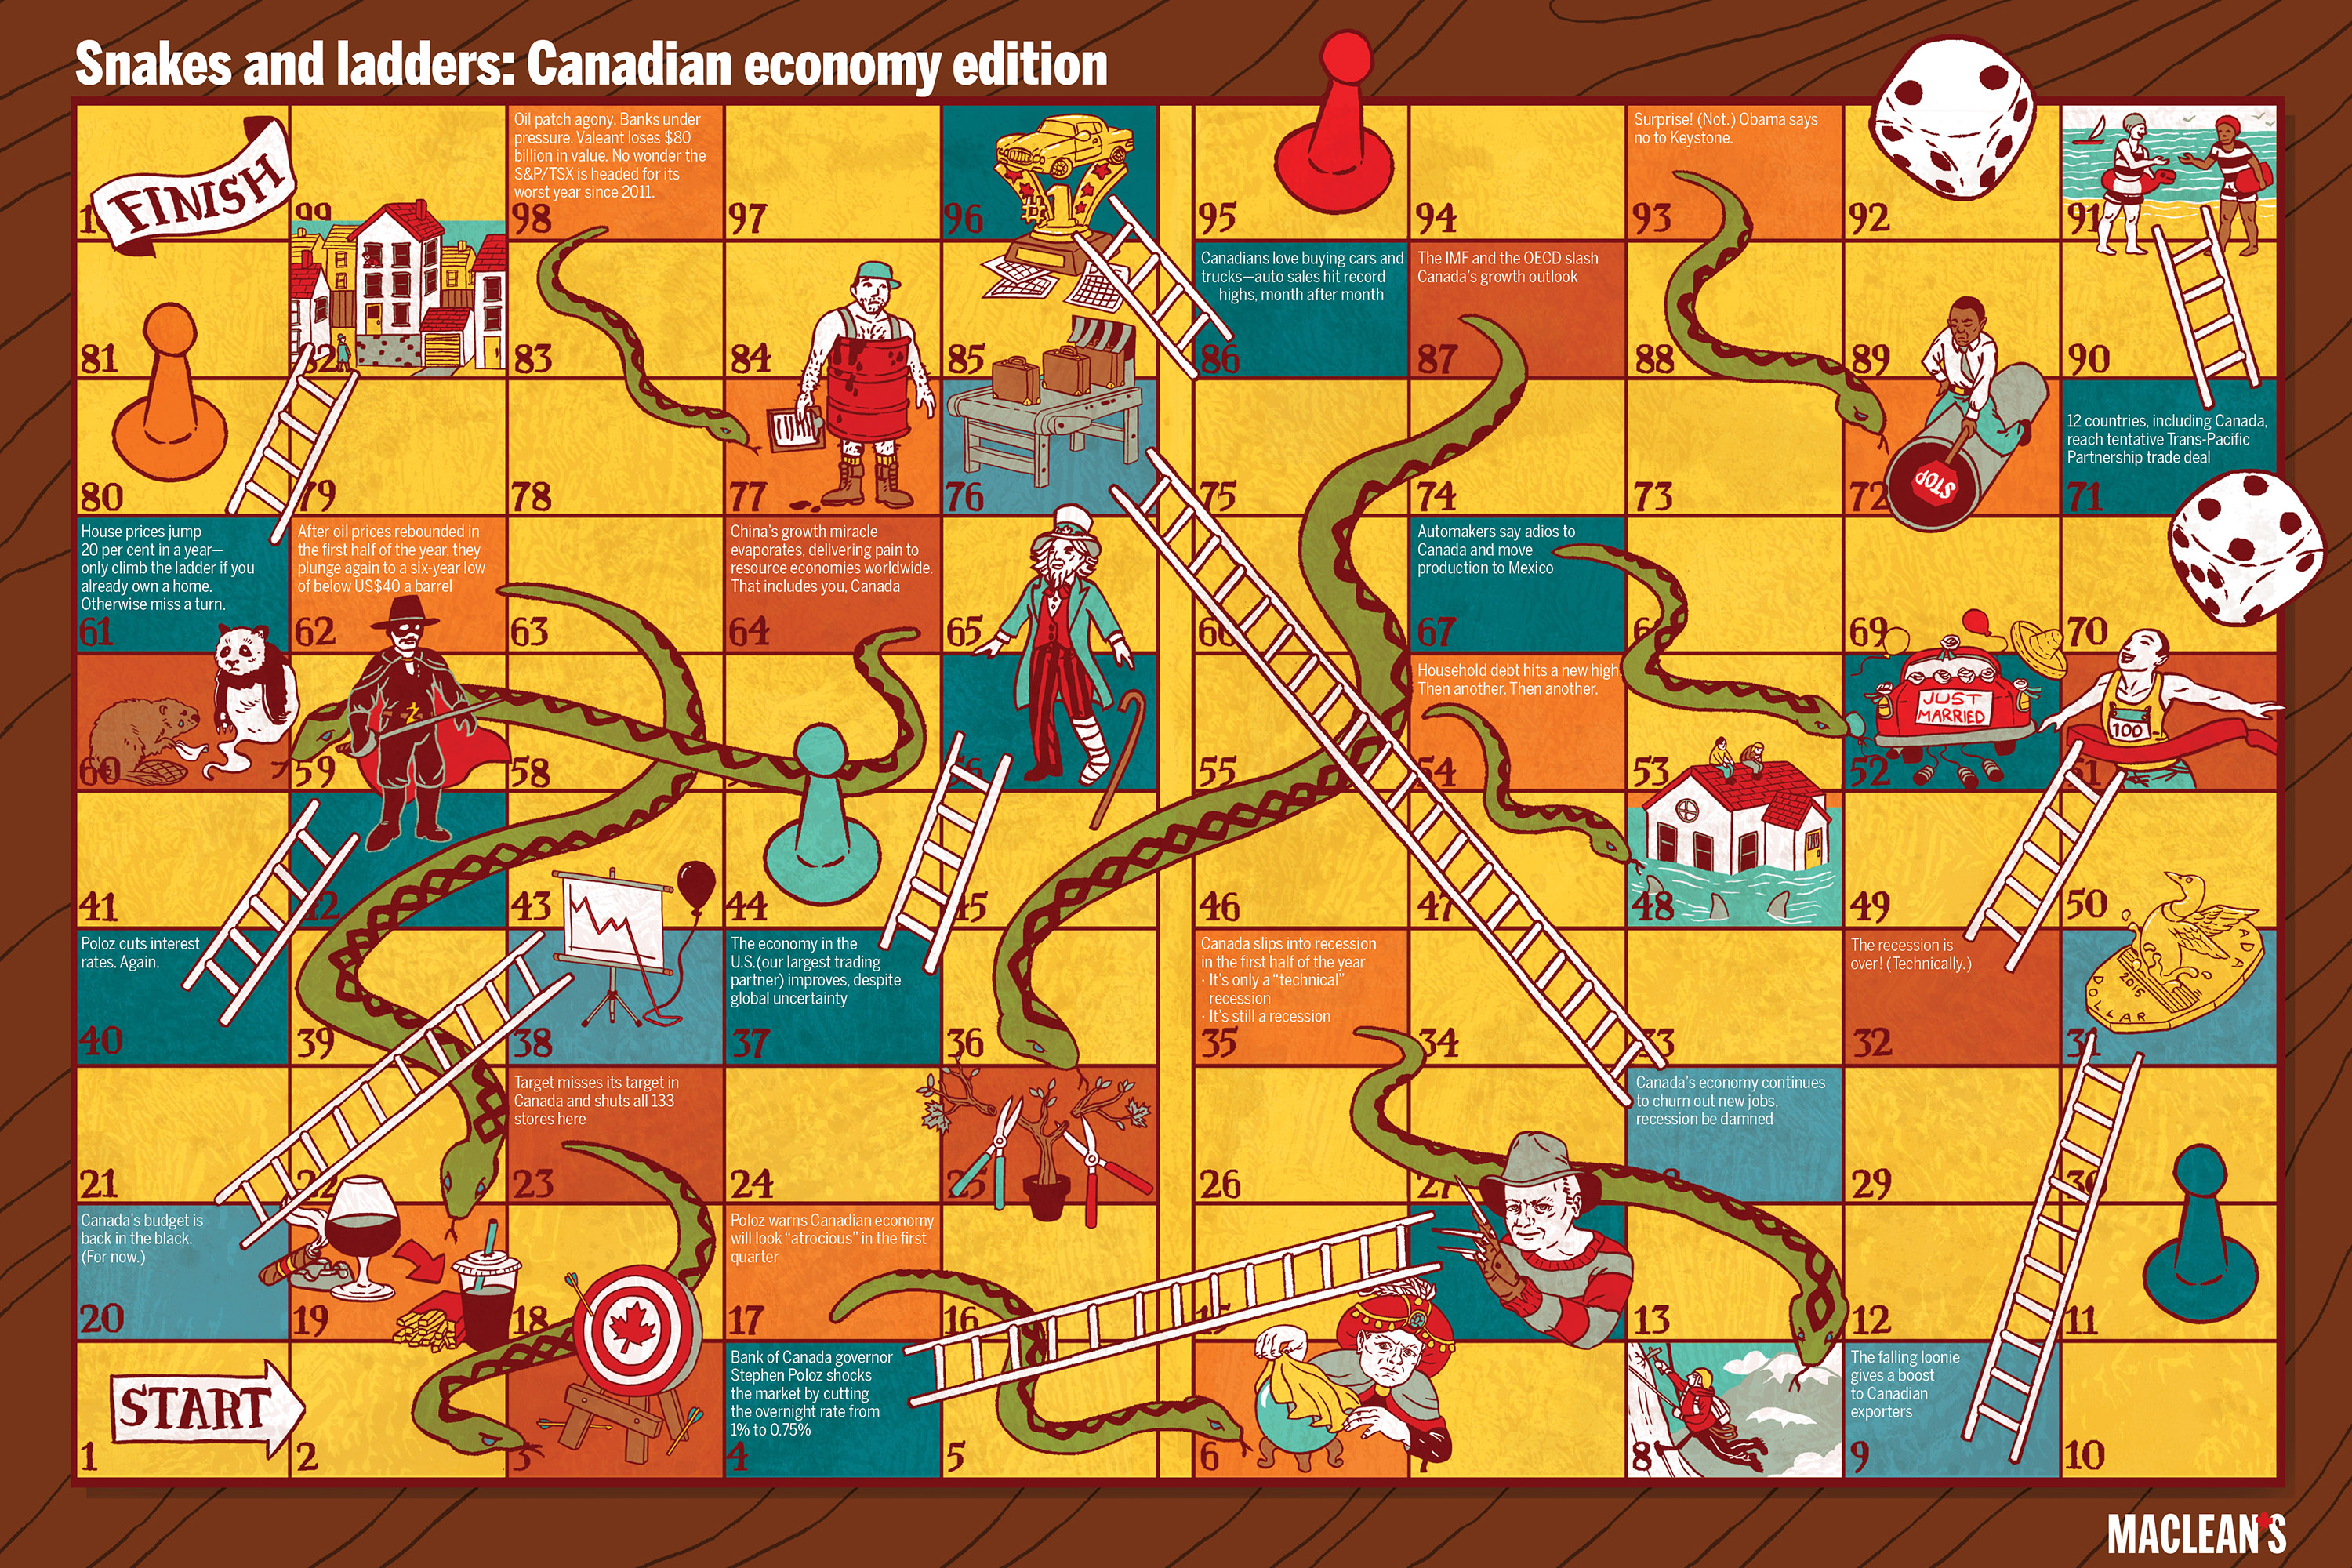 snakes and ladders template pdf - snakes and ladders template snakes and ladders template by